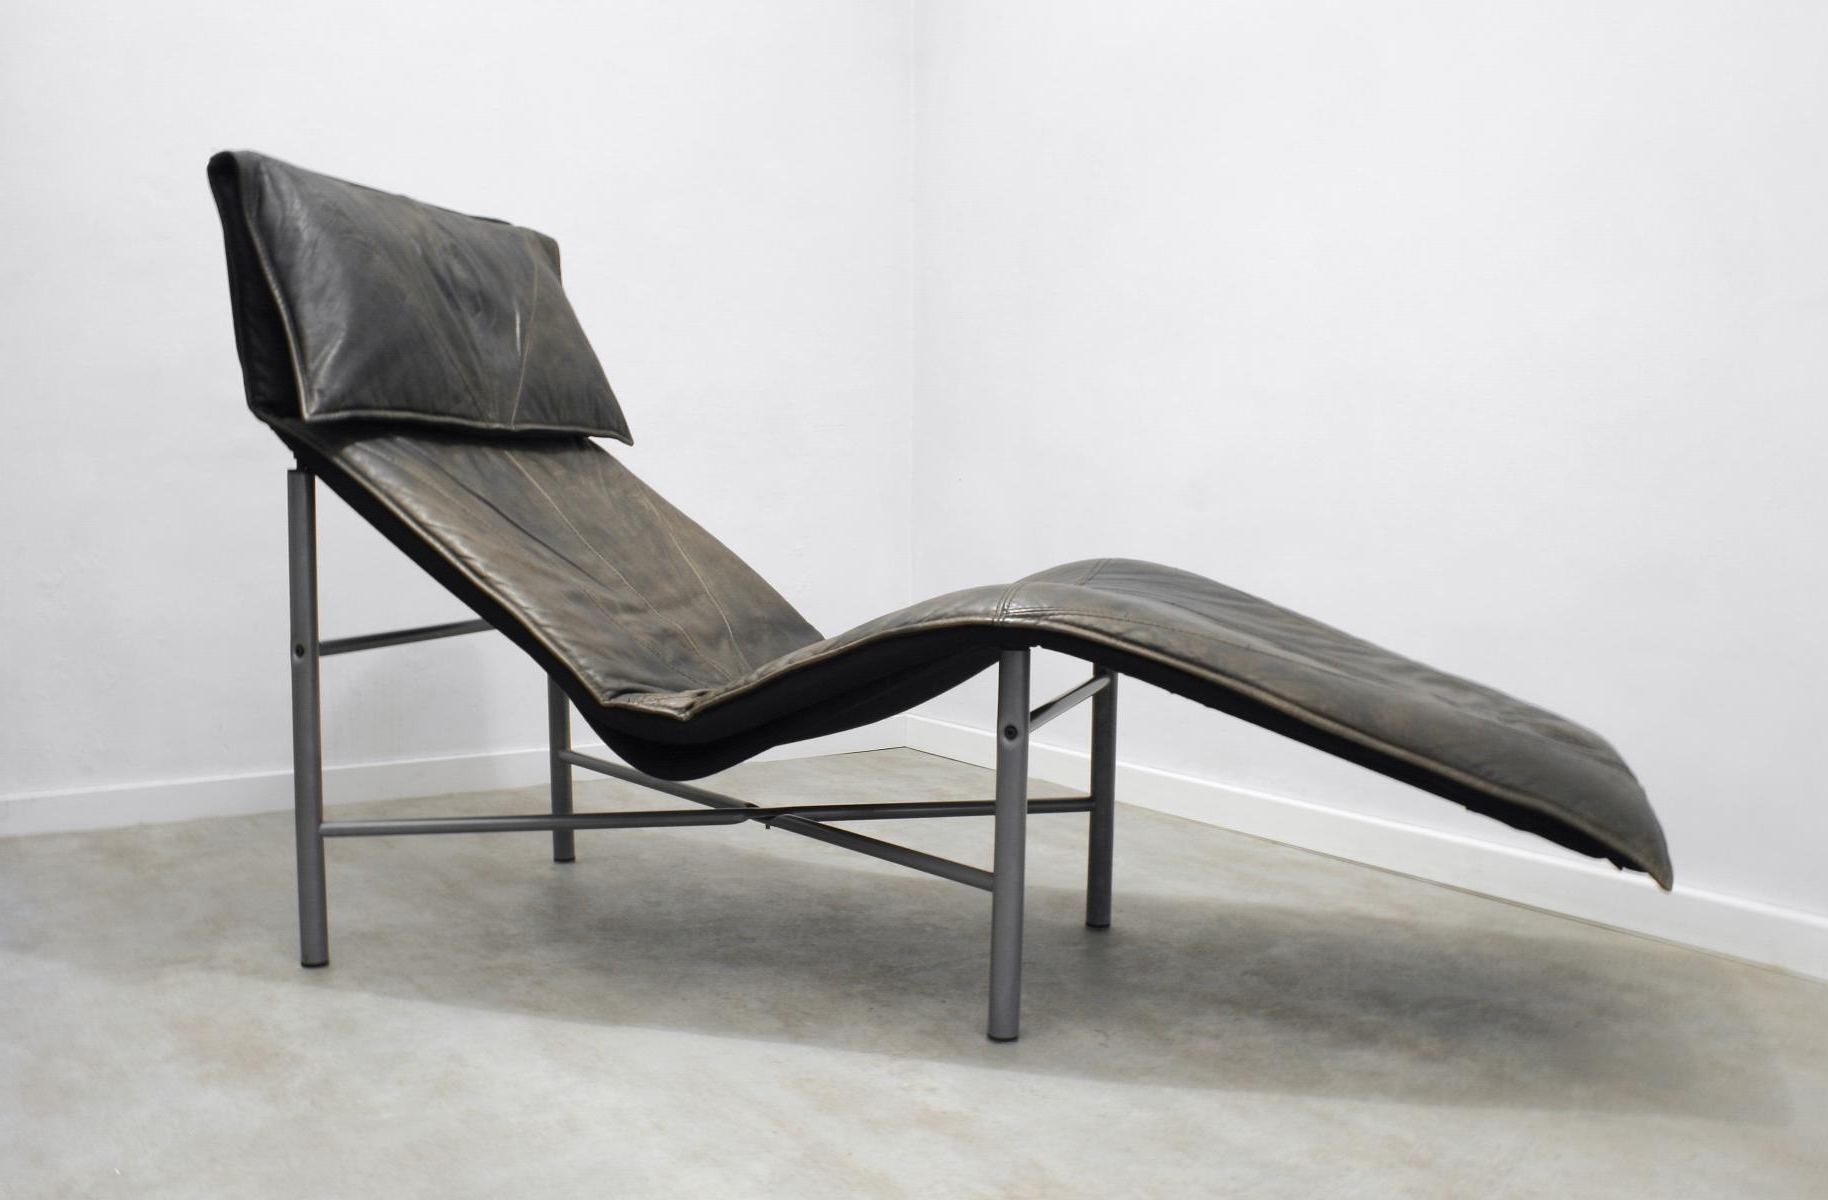 Popular Brown Leather Skye Chaise Loungetord Björklund For Ikea, 1980S For Ikea Chaise Lounges (View 13 of 15)